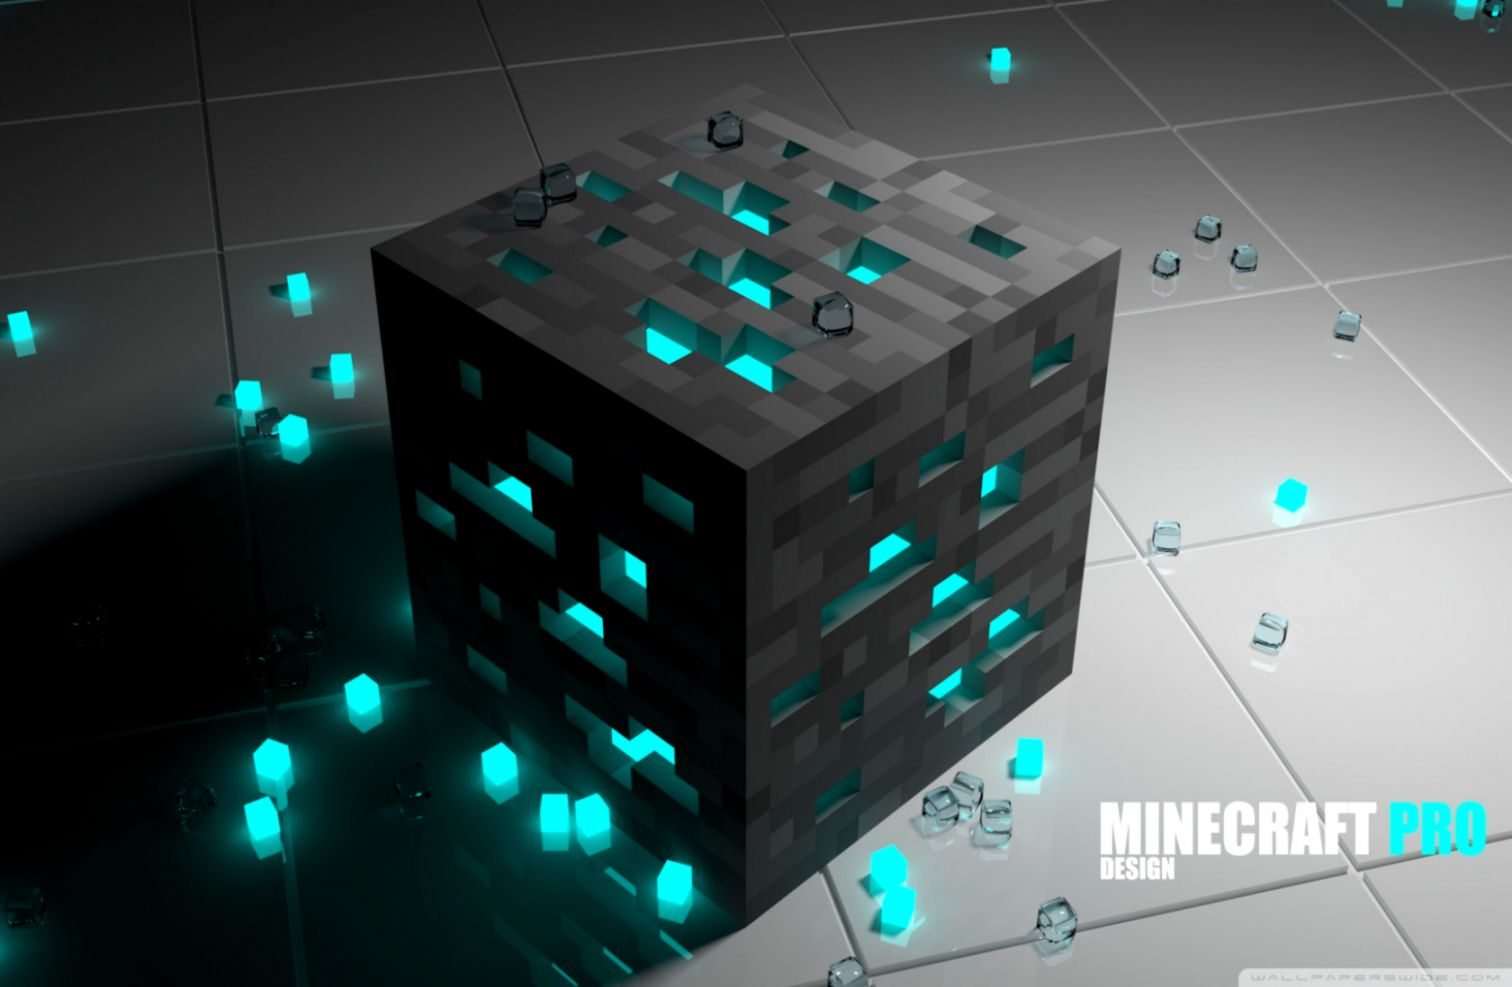 Minecraft 4k Hd Desktop Wallpaper For 4k Ultra Hd Minecraft Wallpaper 4k 1512x987 Wallpaper Teahub Io